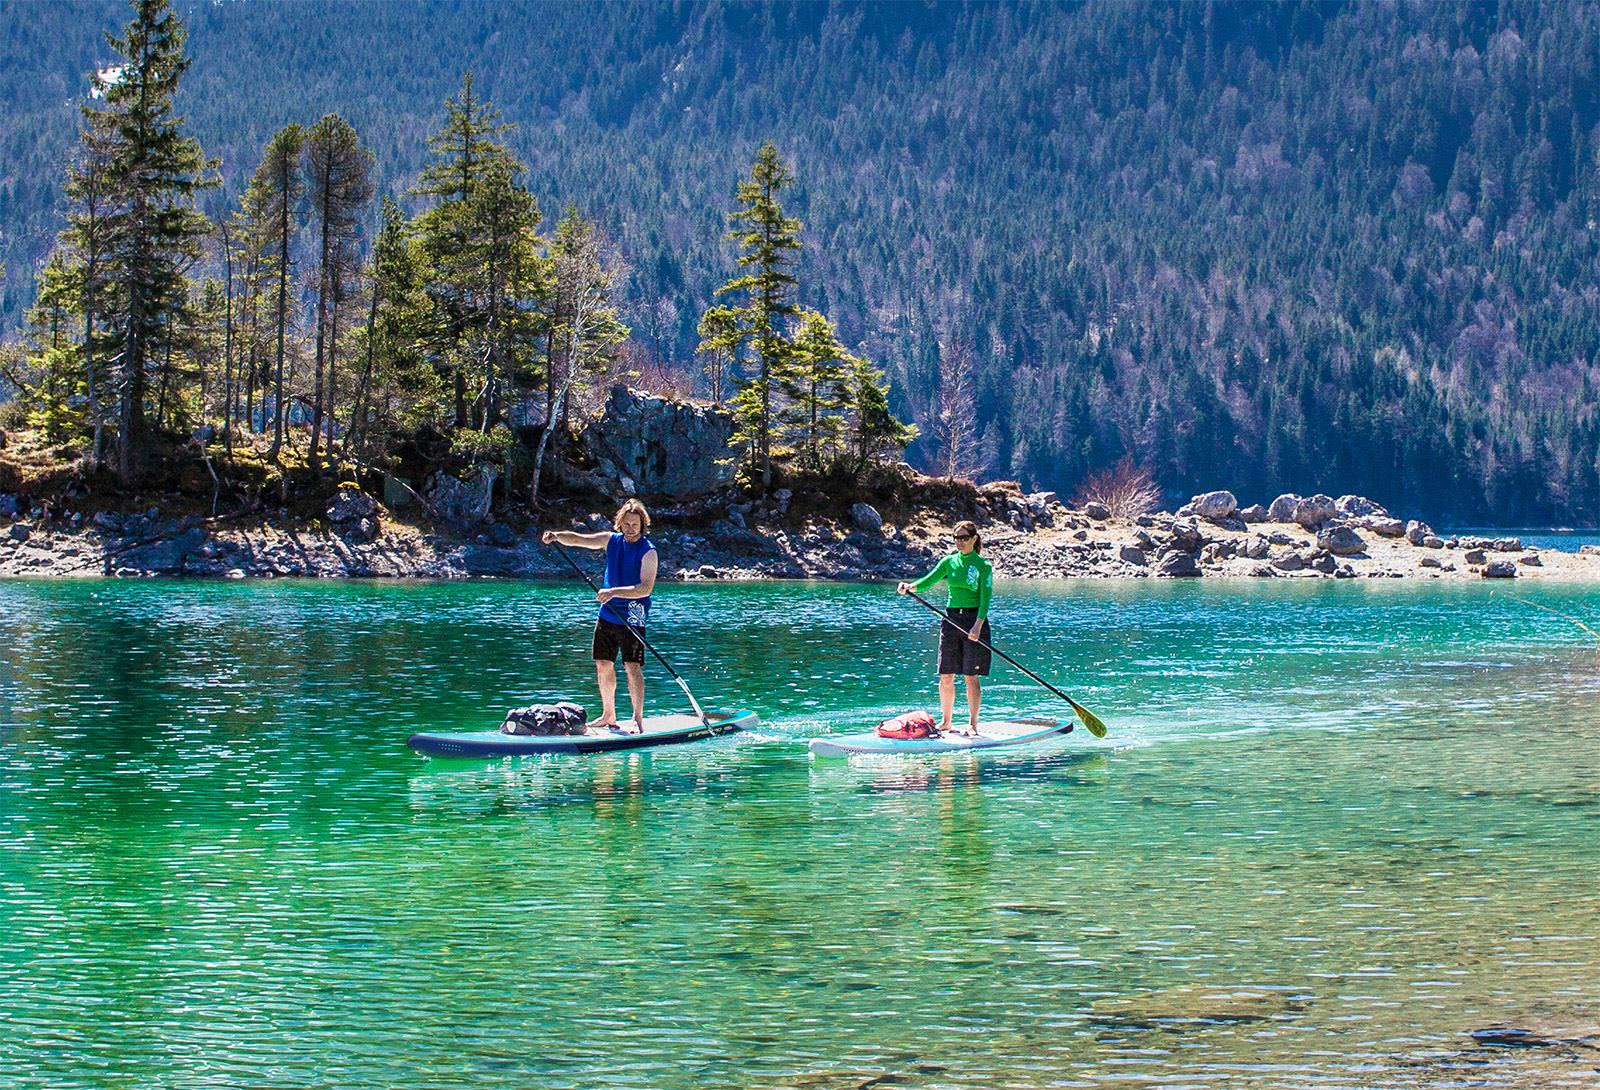 Sup stand up paddle surfing sup italia stand up paddle surfing sup italia - Tipi di tavole da surf ...